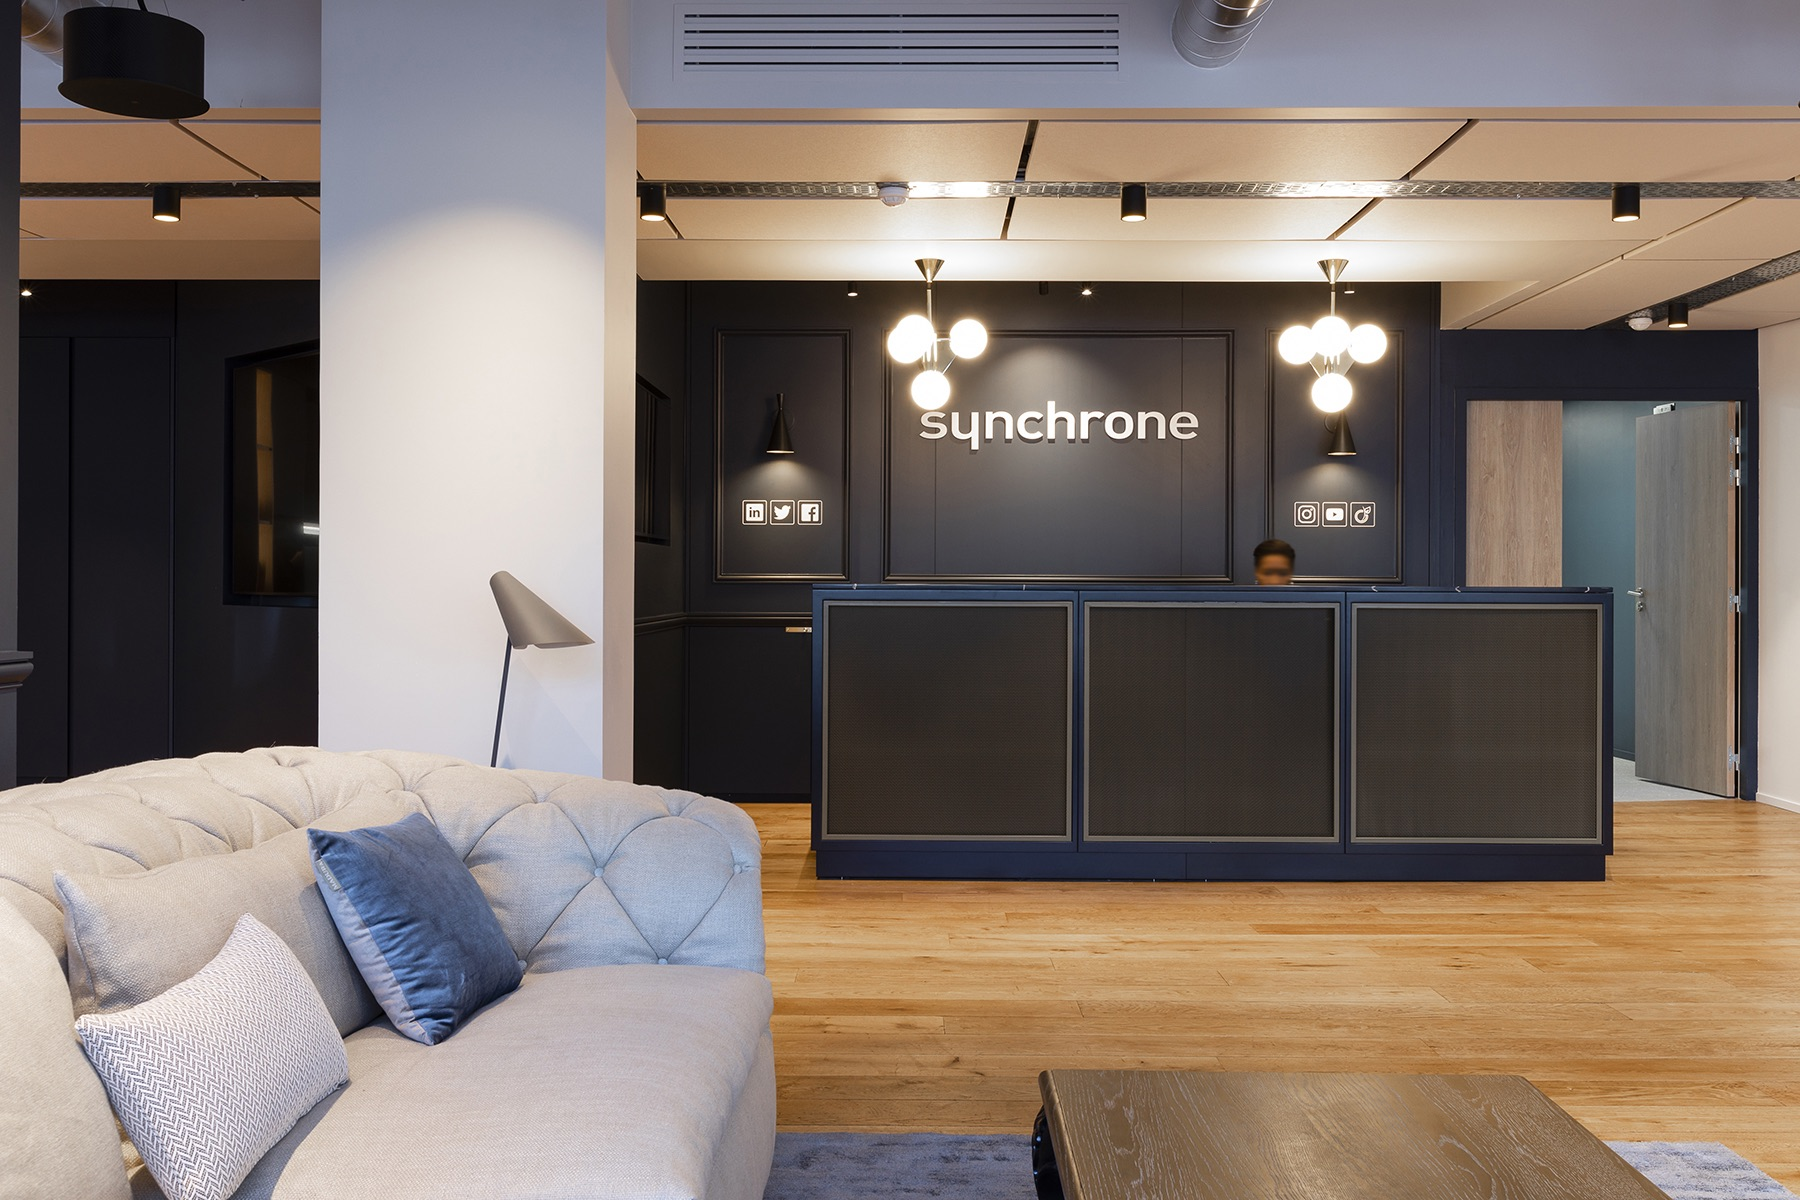 synchrone-paris-office-2